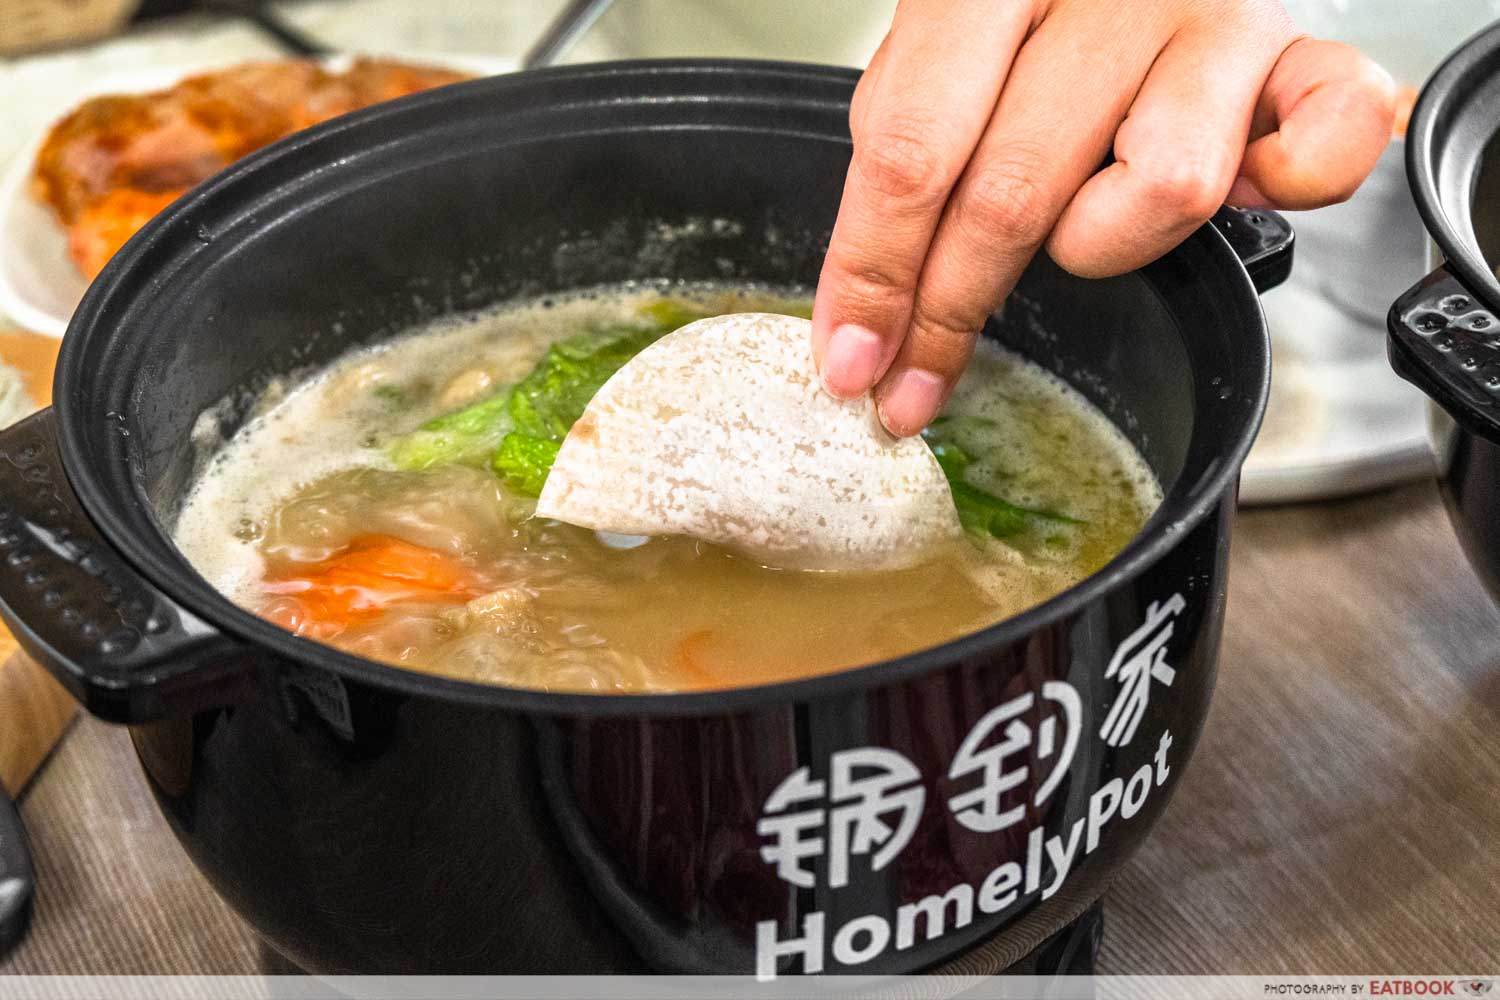 homelypot - dumpling in soup